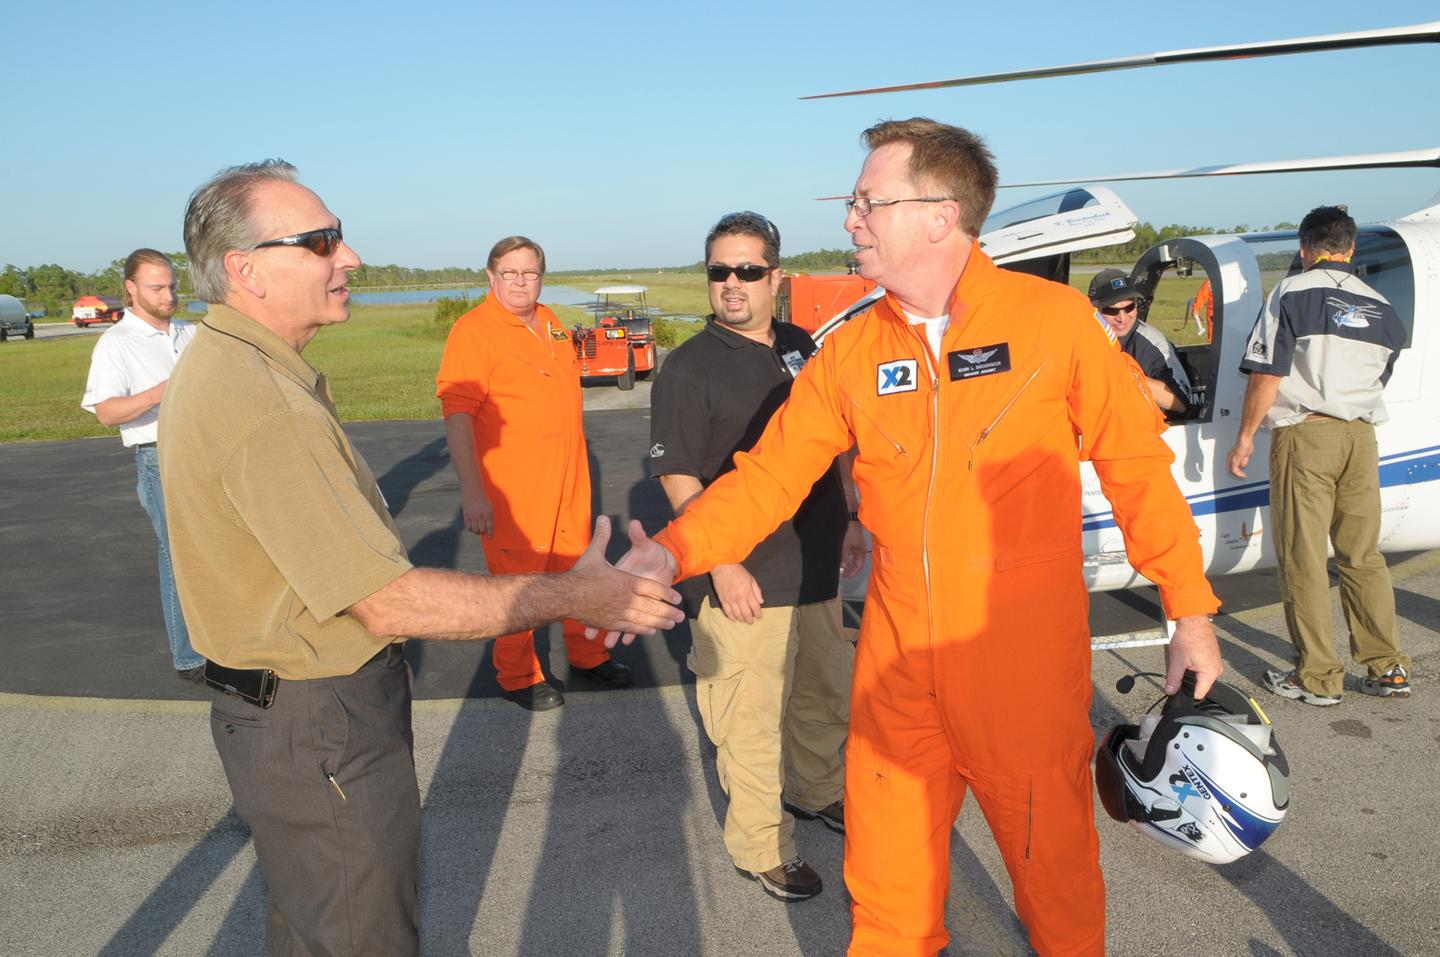 Sikorsky President Jeffrey Pino (left) shakes hands with Chief Pilot Kevin Bredenbeck after the flight